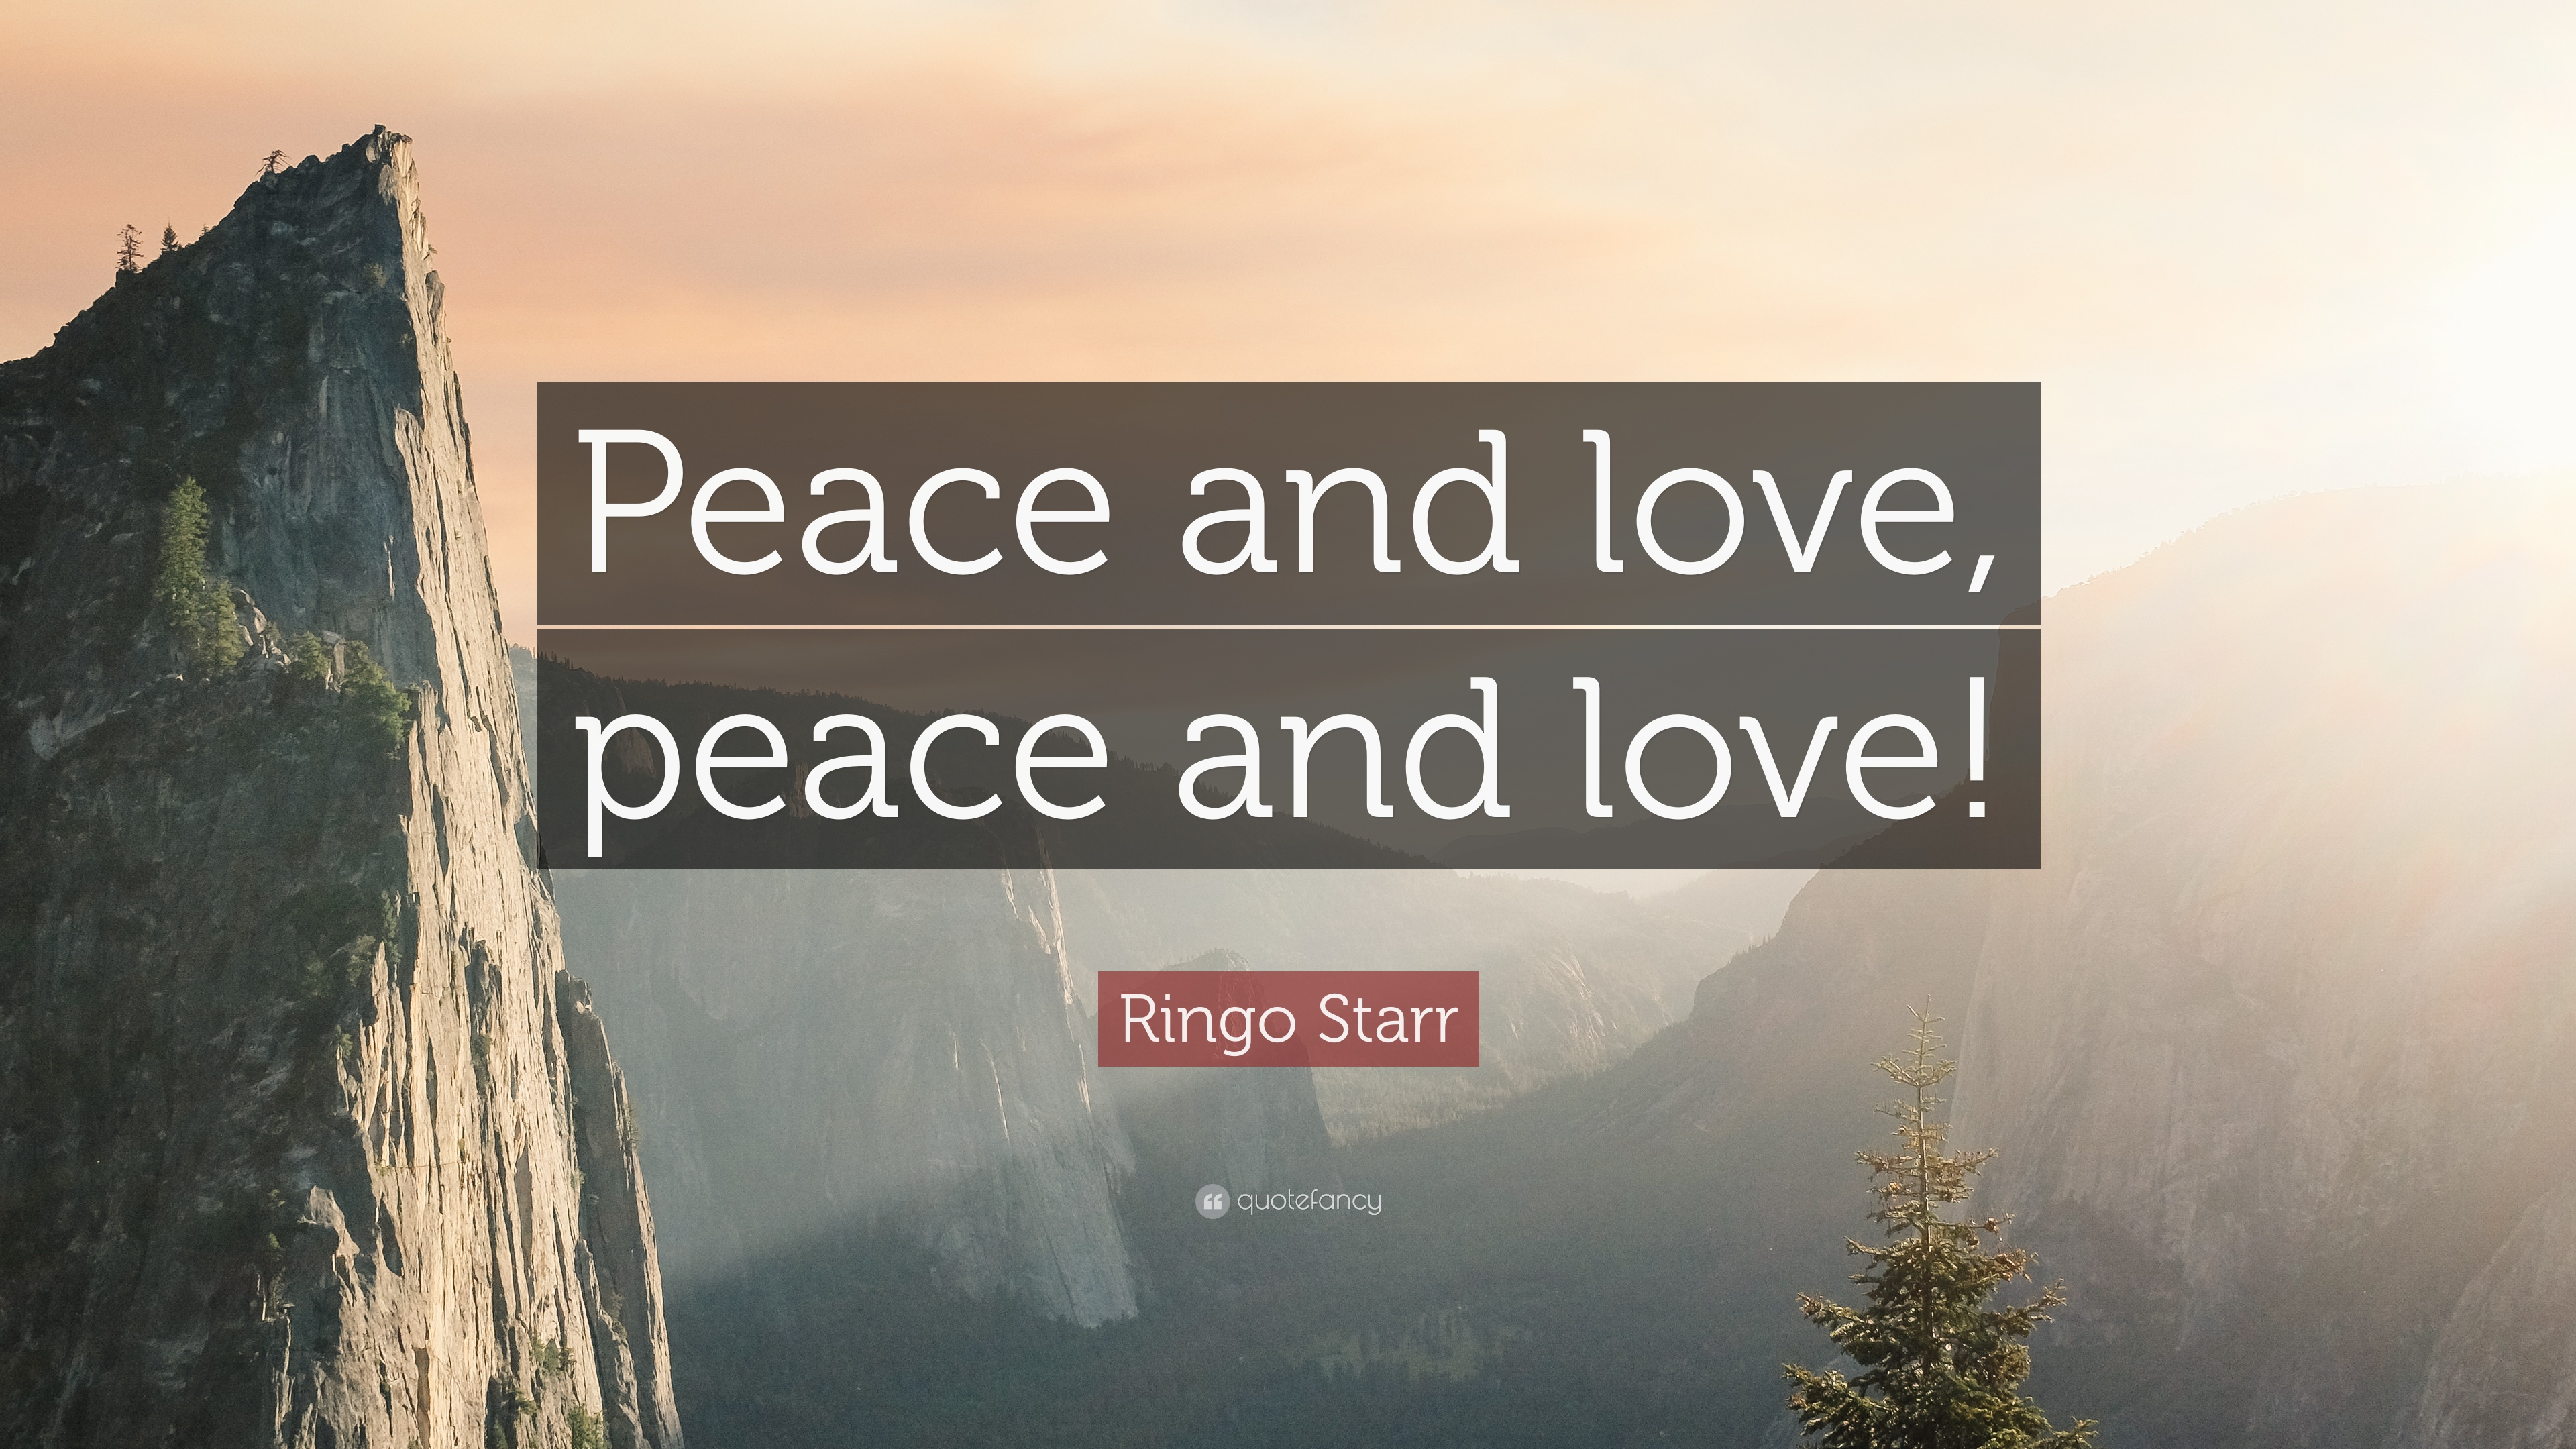 Ringo Starr Quote: U201cPeace And Love, Peace And Love!u201d